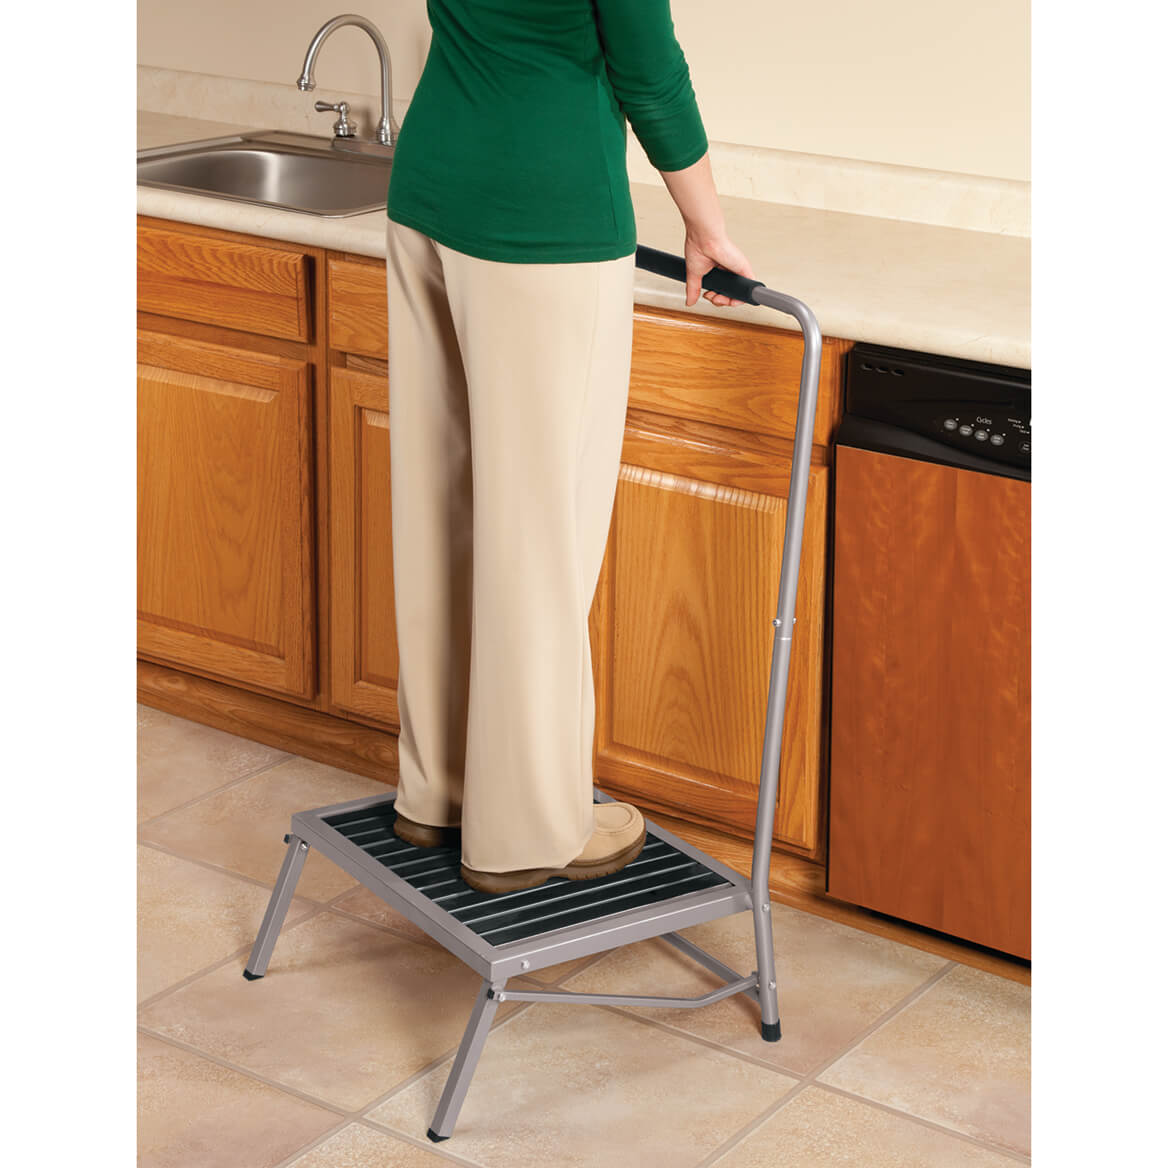 Extra Wide Folding Step Stool with Handle                 XL-344953